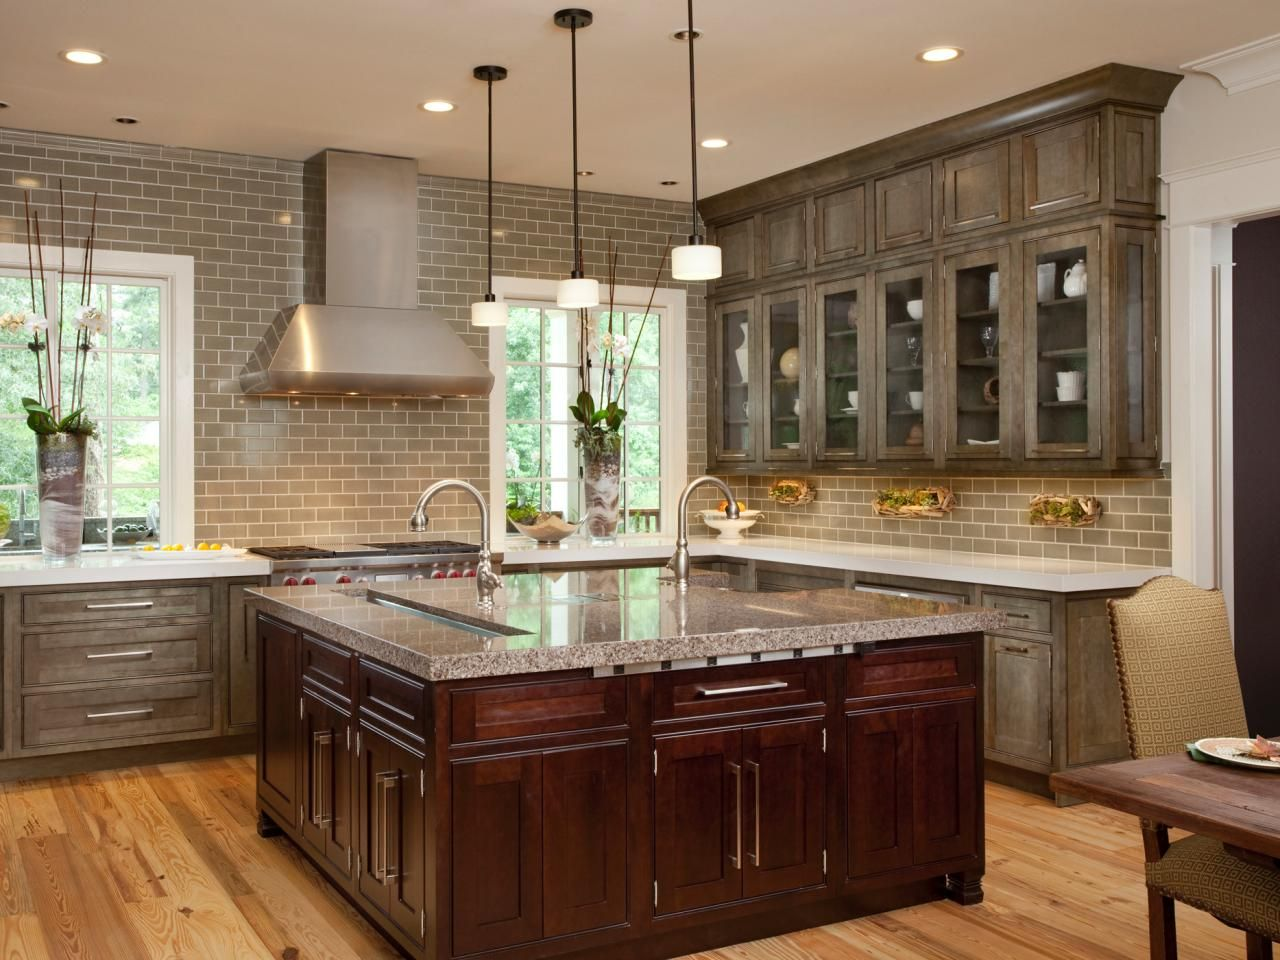 Best Gray Based Painted Cabinets That Complement The Cherry 400 x 300